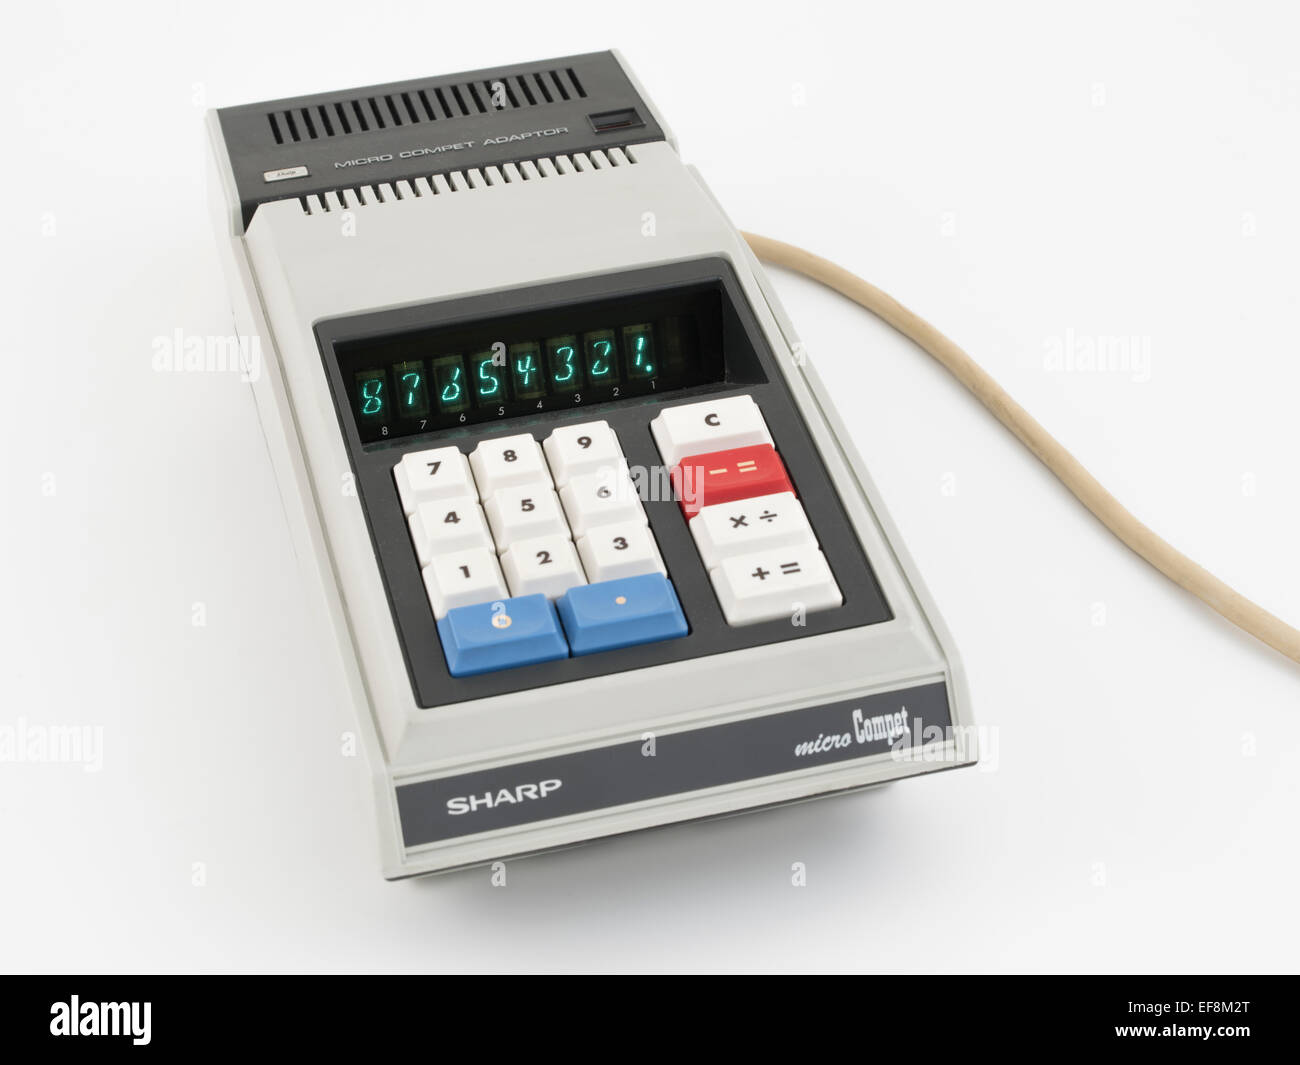 SHARP micro COMPET QT-8B ONE OF THE FIRST BATTERY OPERATED HAND HELD CALCULATORS (1970) - Stock Image